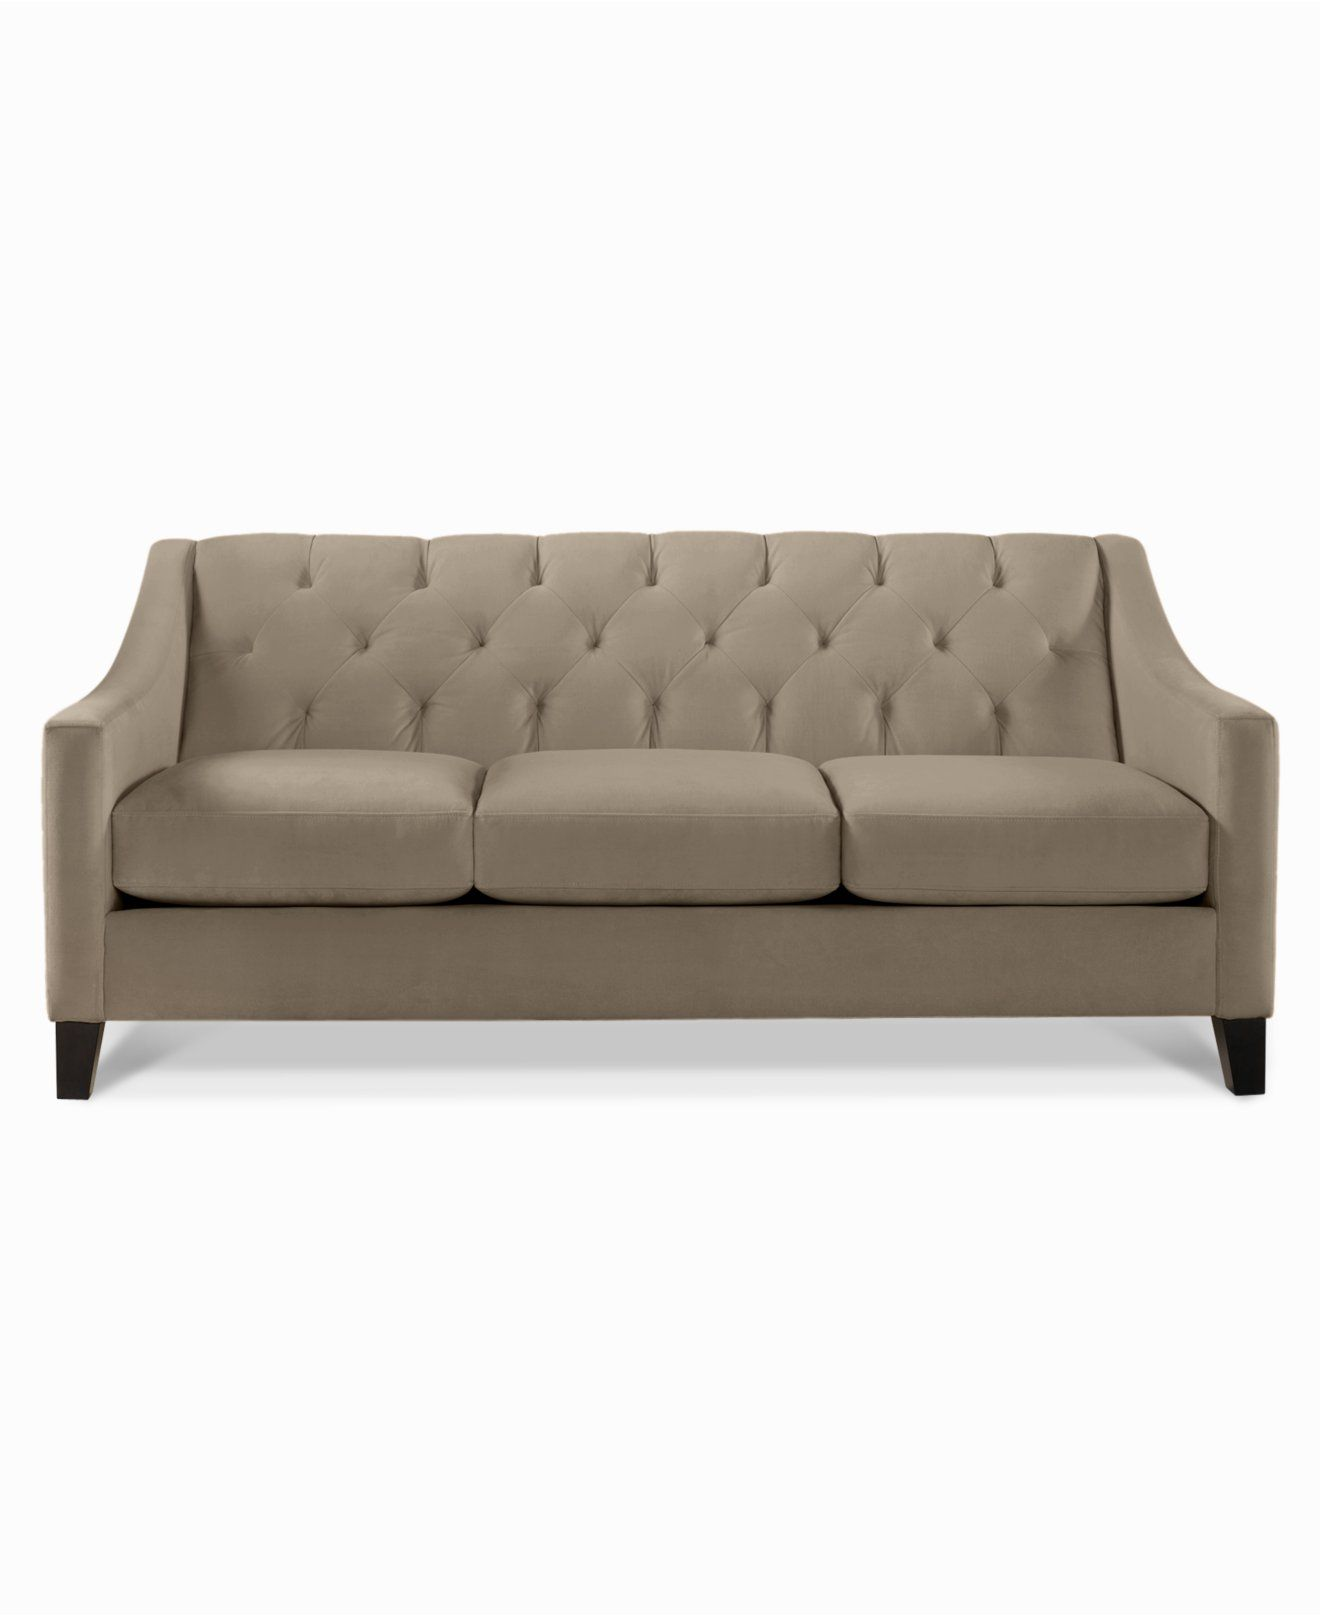 tufted sofa set brown sofas decorating ideas chloe velvet couches and furniture